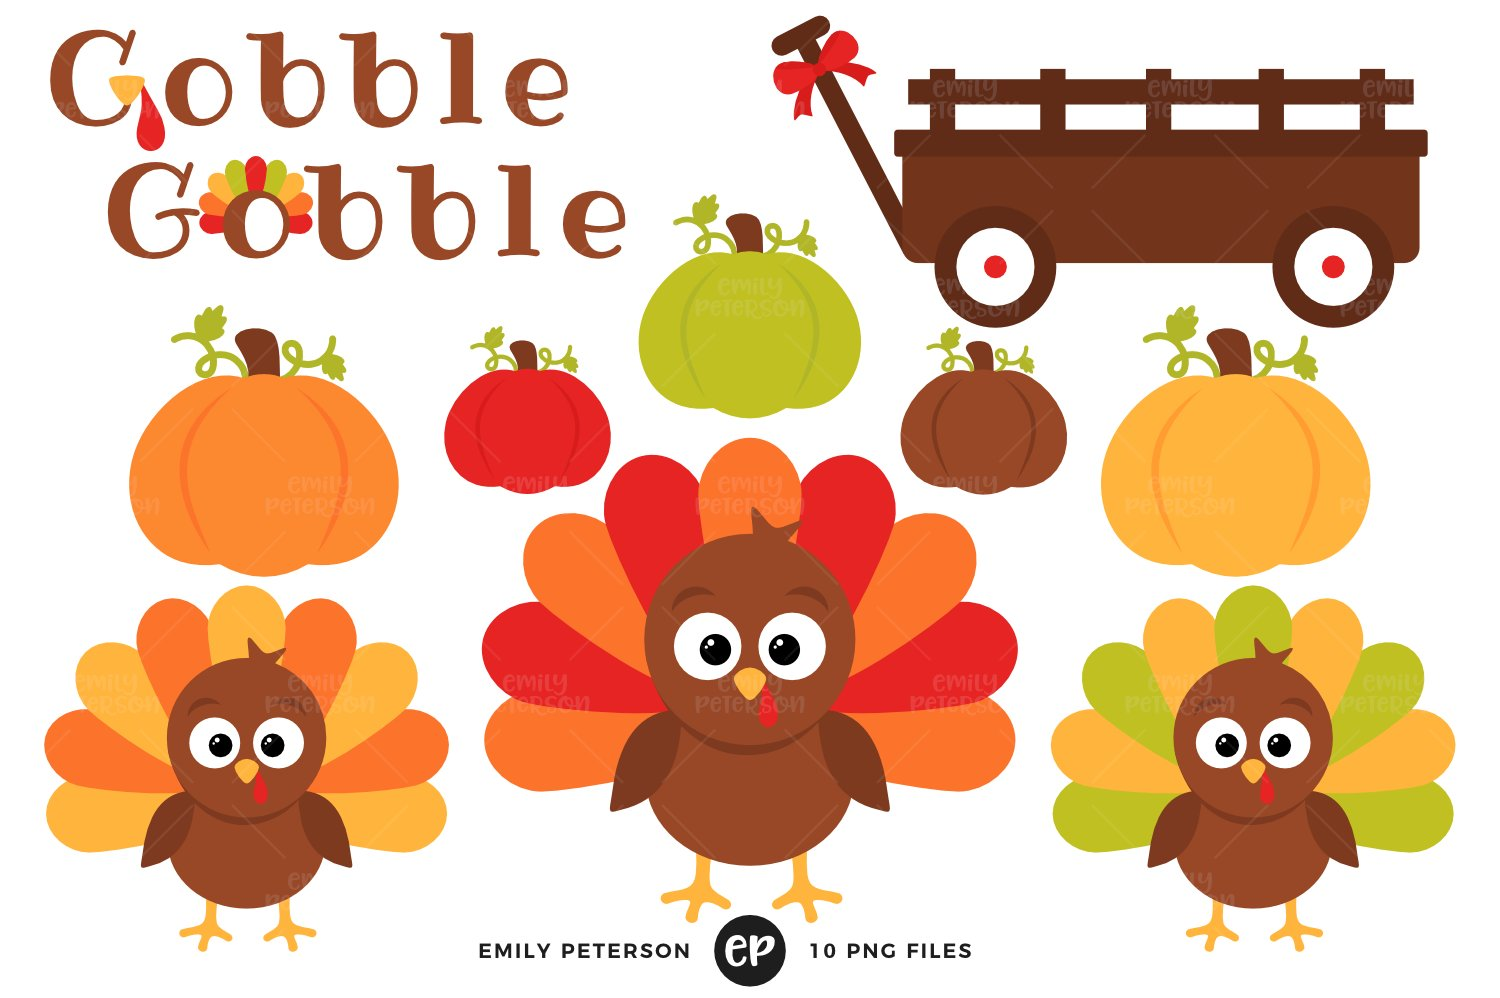 Pene clipart picture black and white Turkey Clipart picture black and white